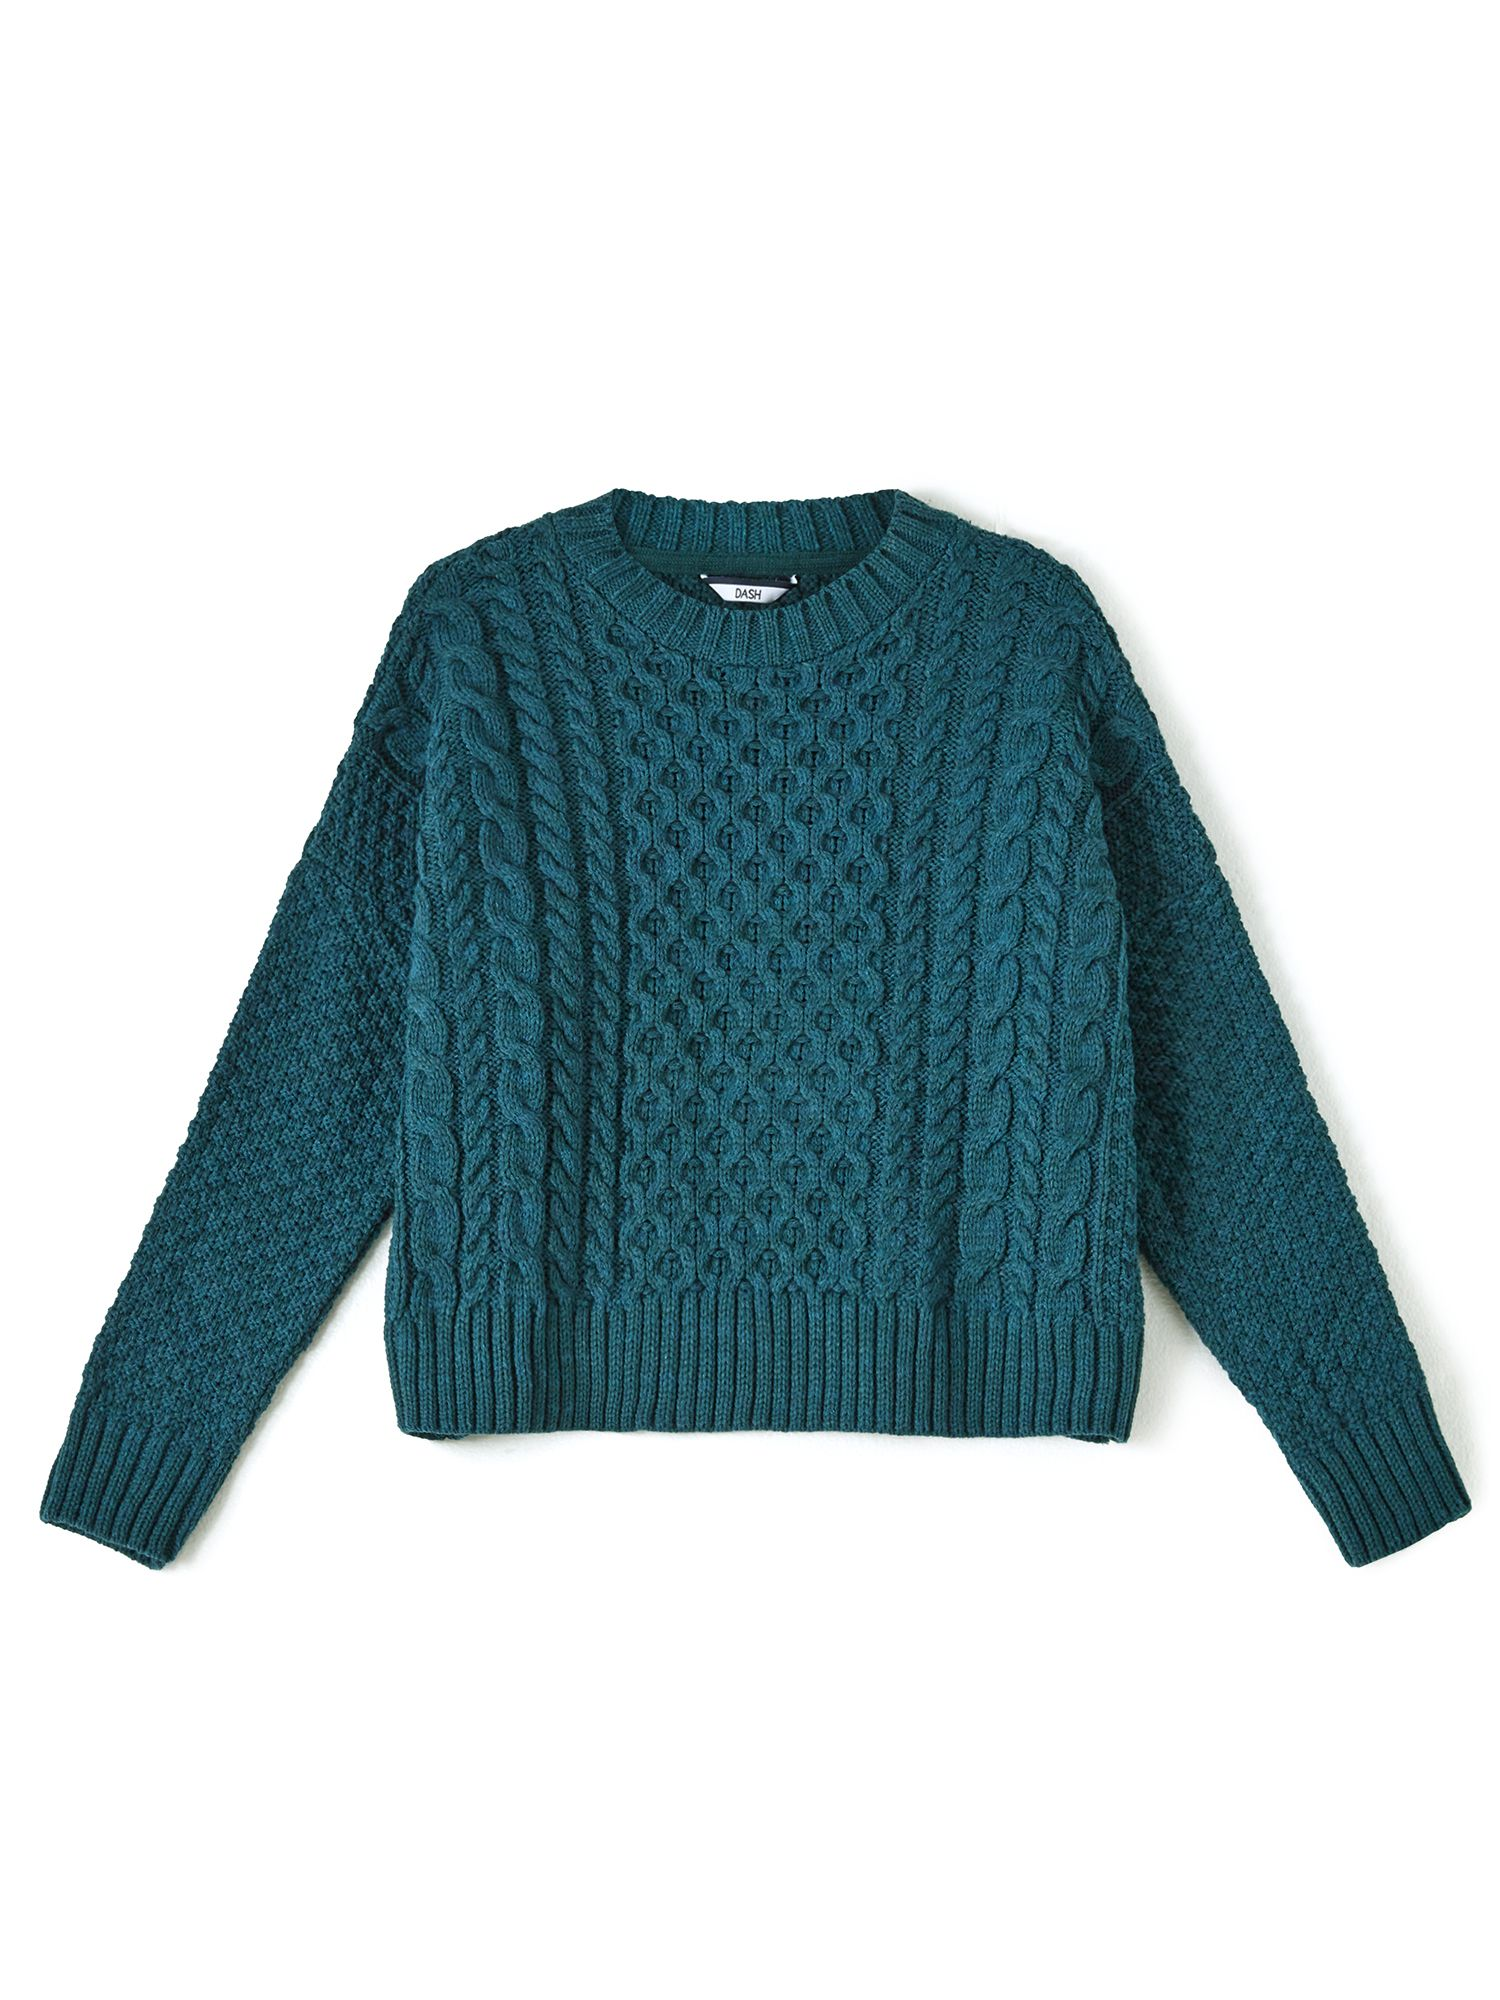 Dash Dash Teal Cable Knit Jumper, Turquoise